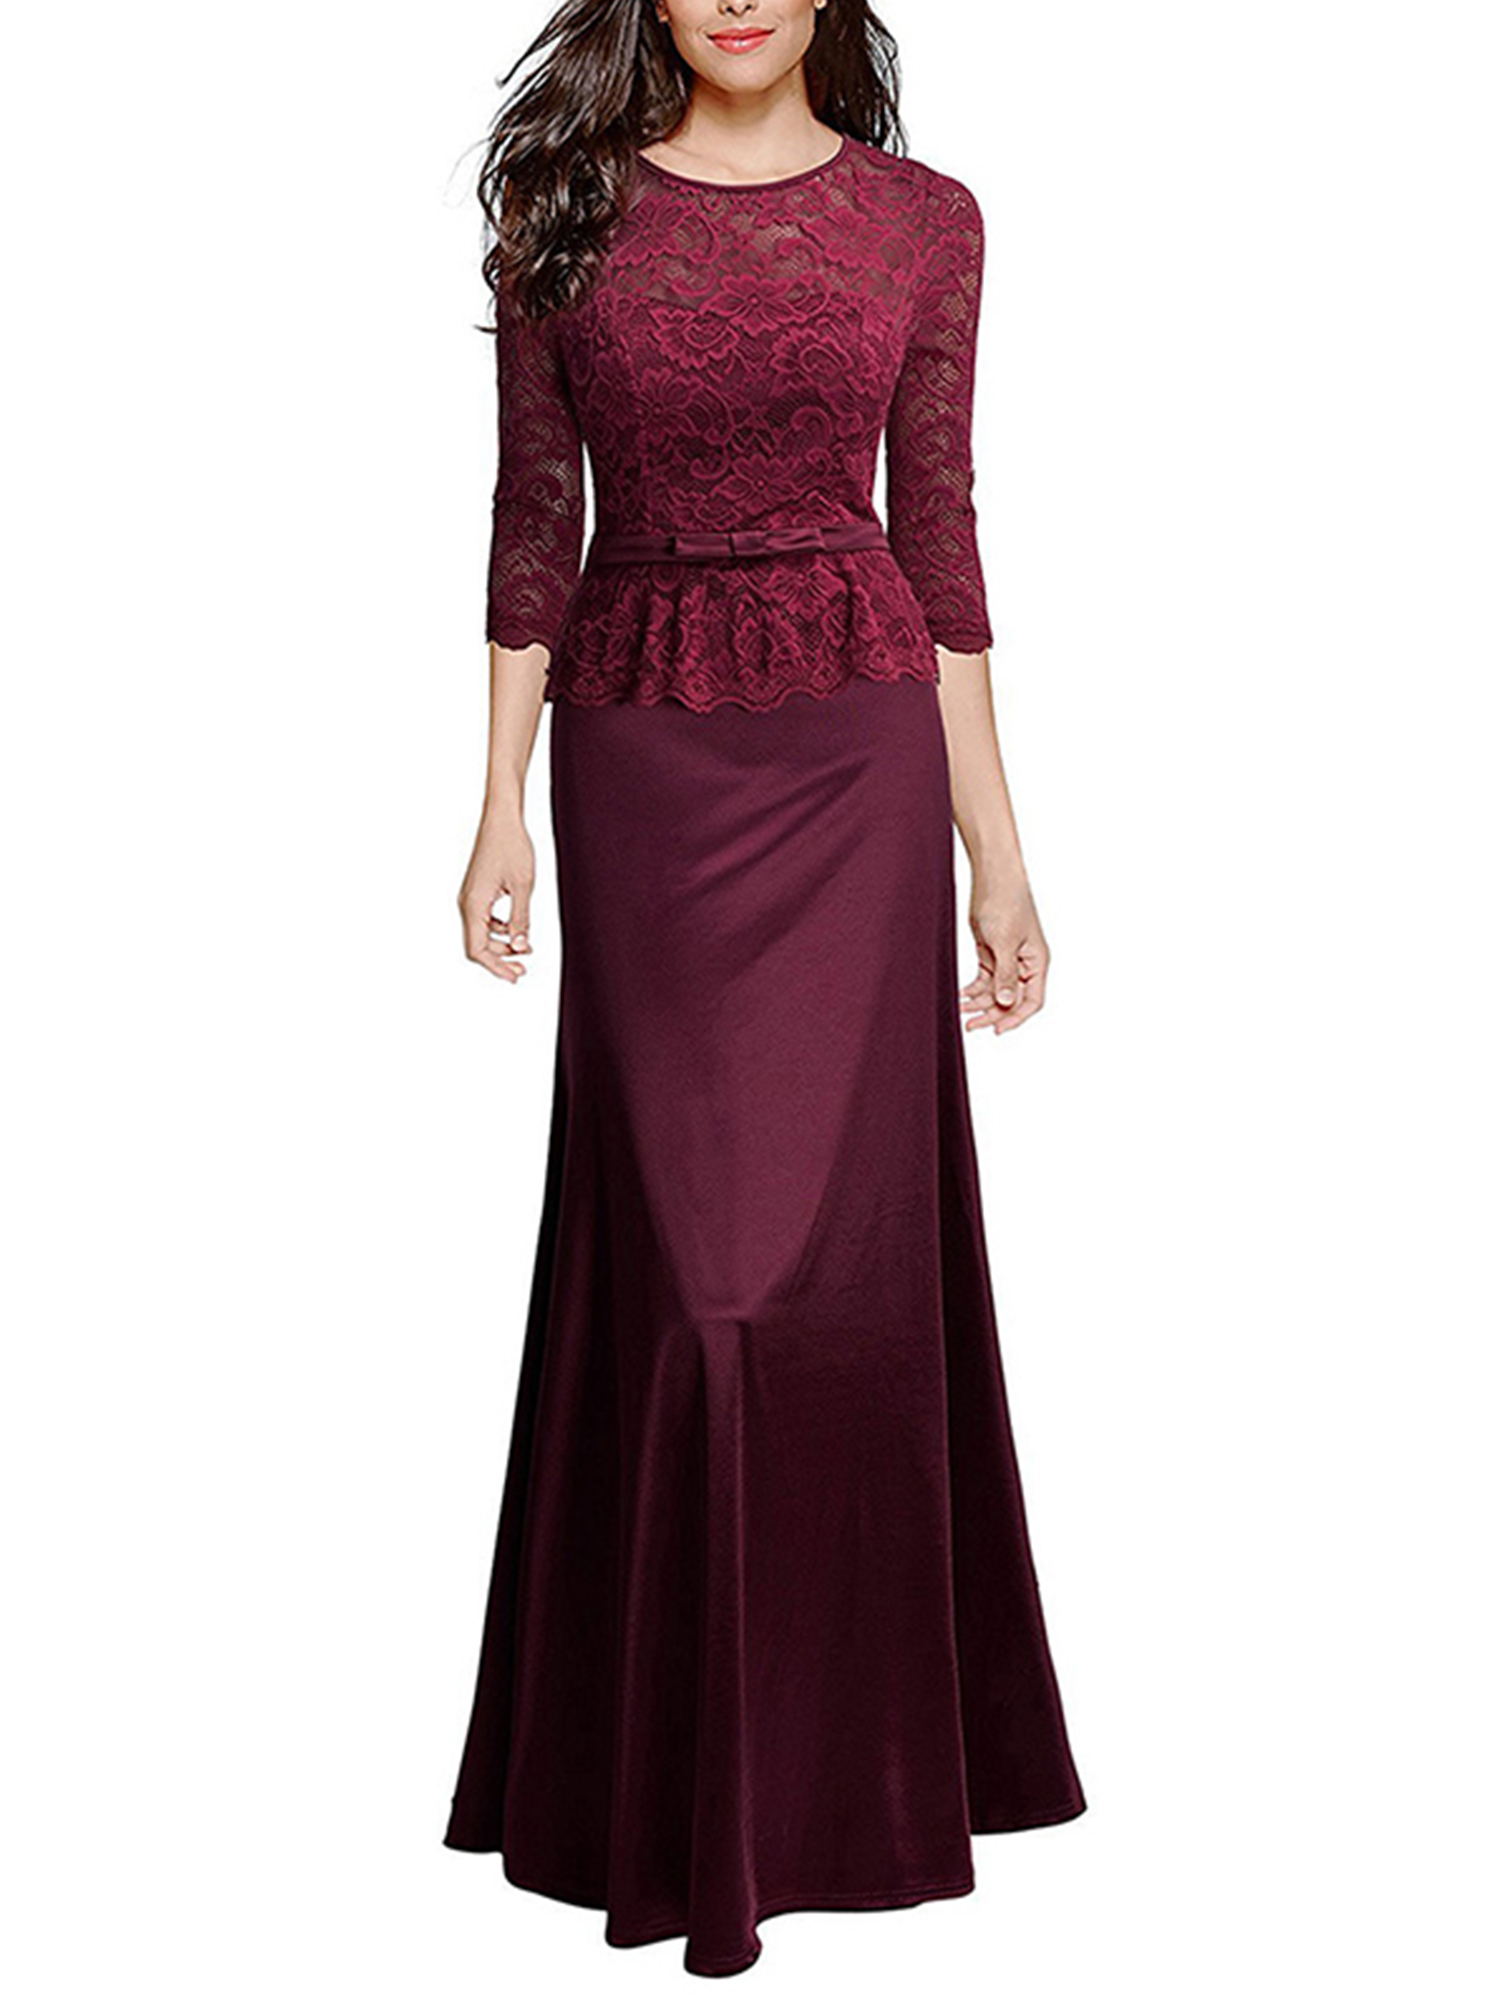 Women Lace Maxi Formal Dress Prom Bridesmaid Wedding Evening Party Cocktail Gown